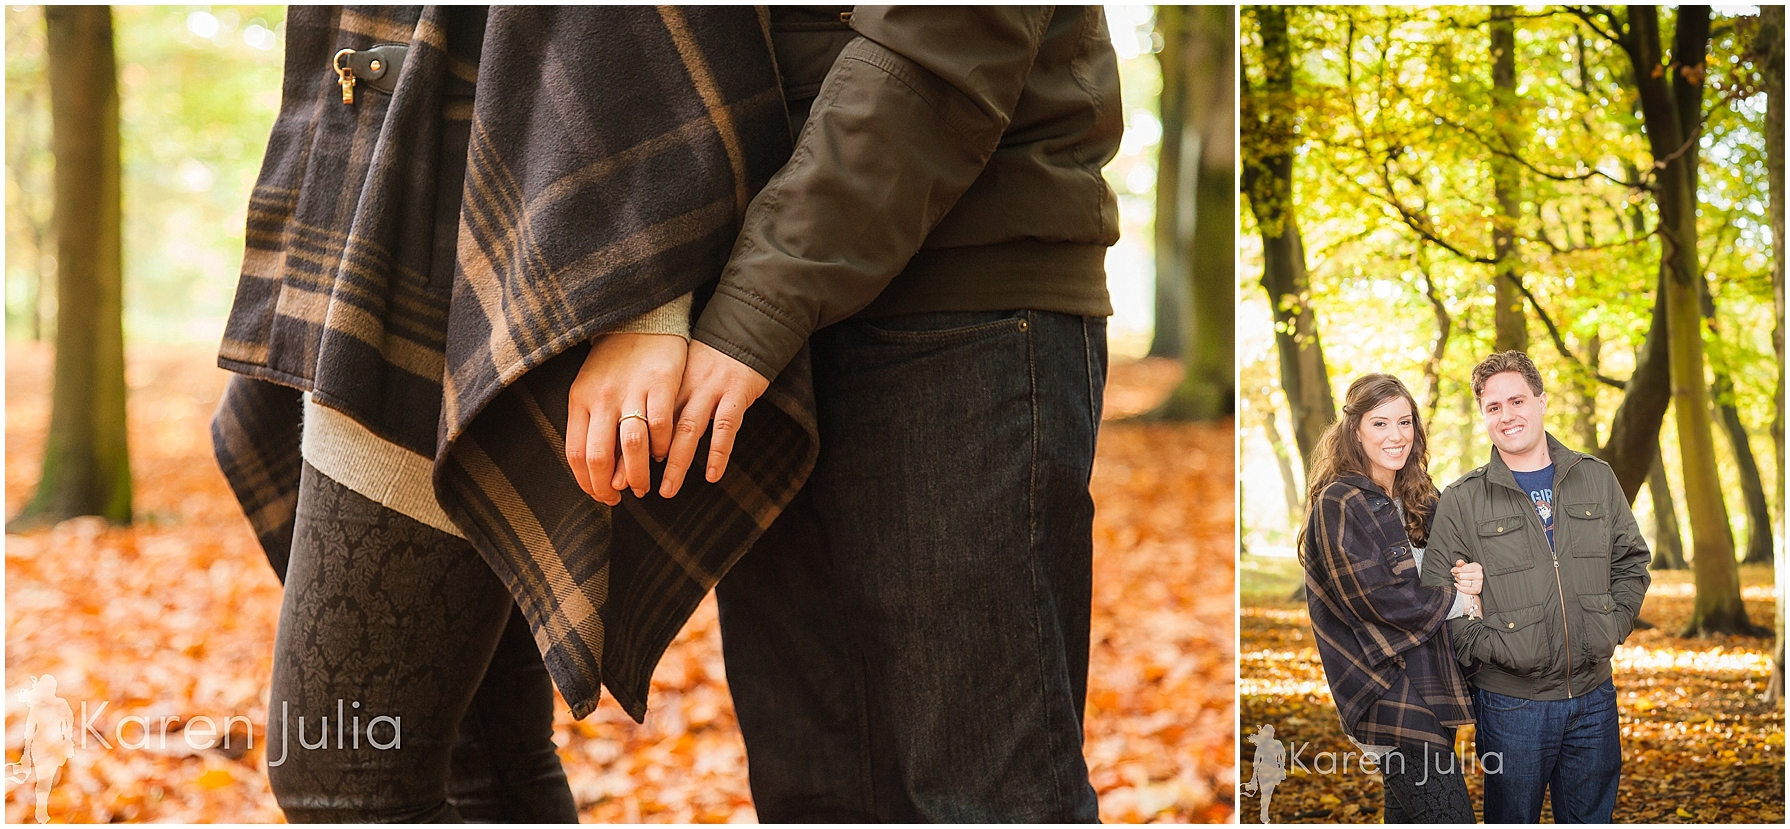 Sefton Park Autumn Engagement Shoot